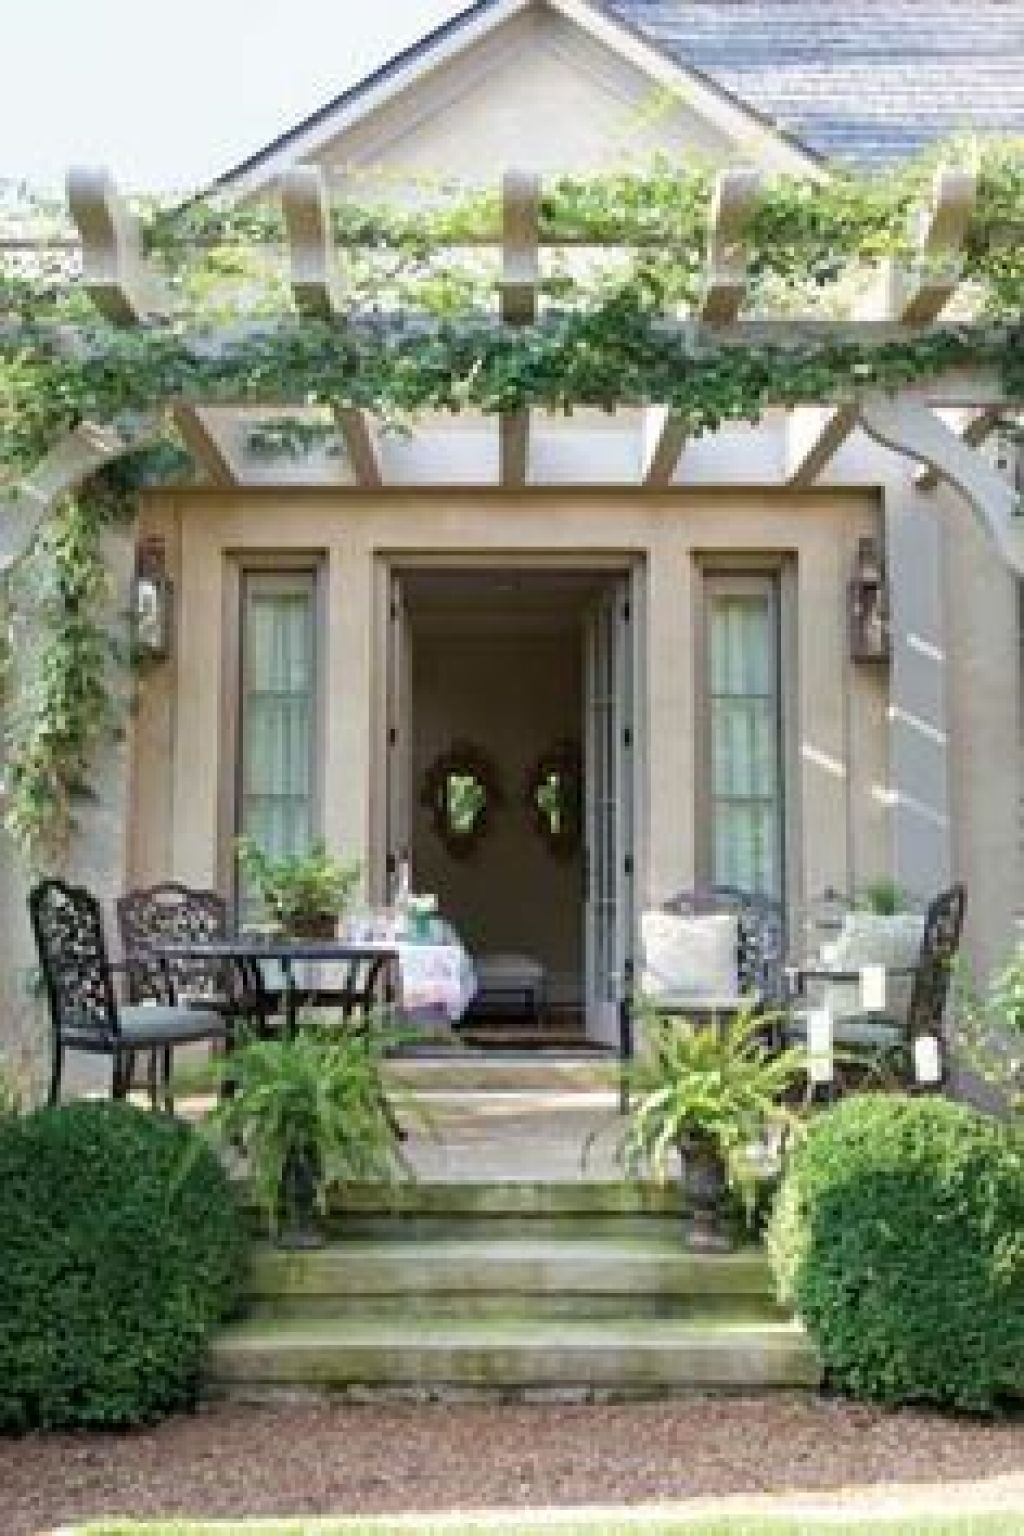 1000 Ideas About Front Porch Pergola On Pinterest Pergolas, Front - 1000 Ideas About Front Porch Pergola On Pinterest Pergolas, Front